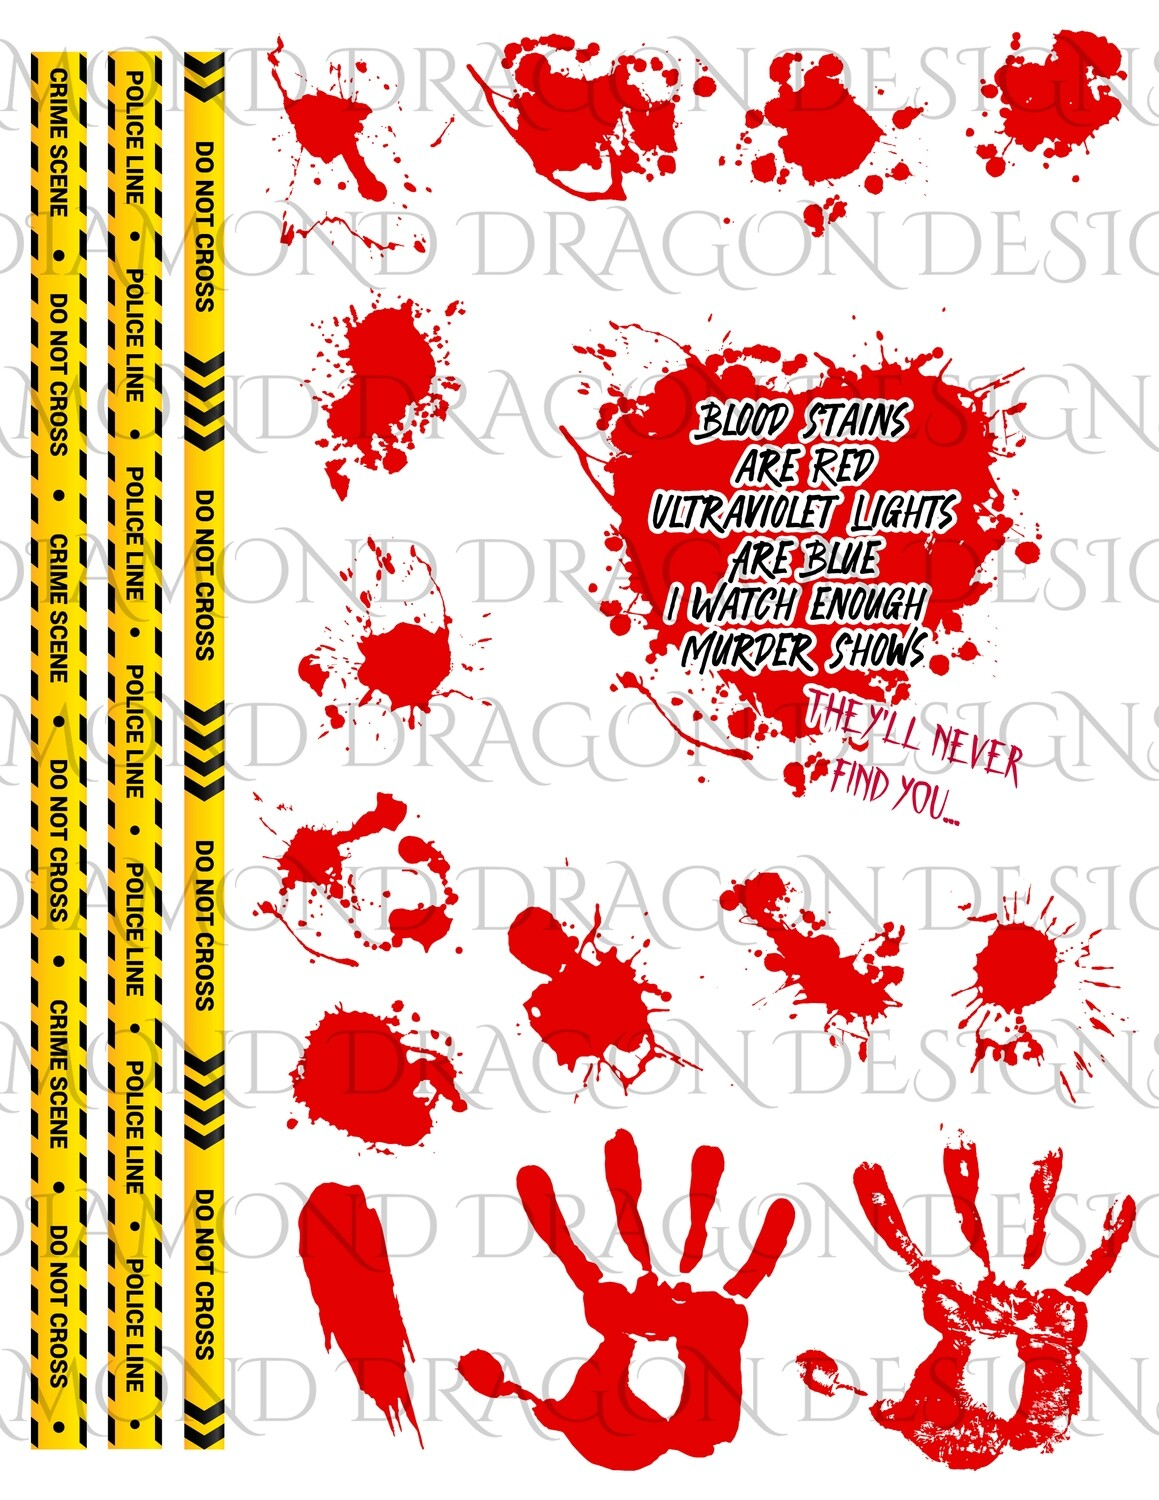 Halloween - Crime Tape, Blood Stains Are Red, Blood Splatter Heart, Full Page, Digital Image